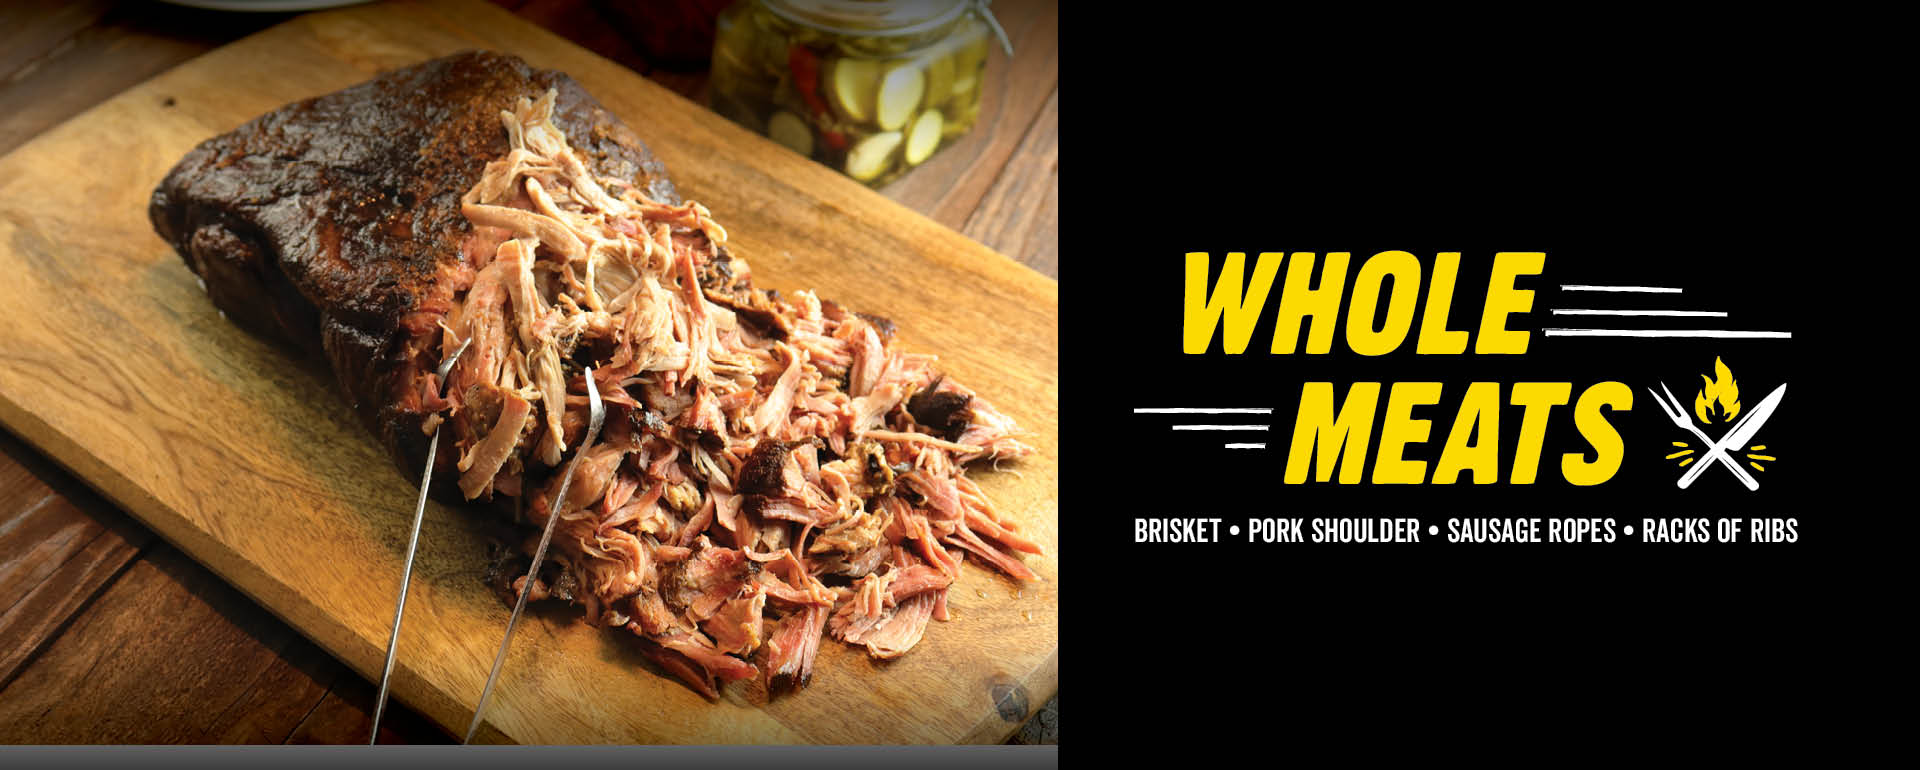 Order Whole Meats Today